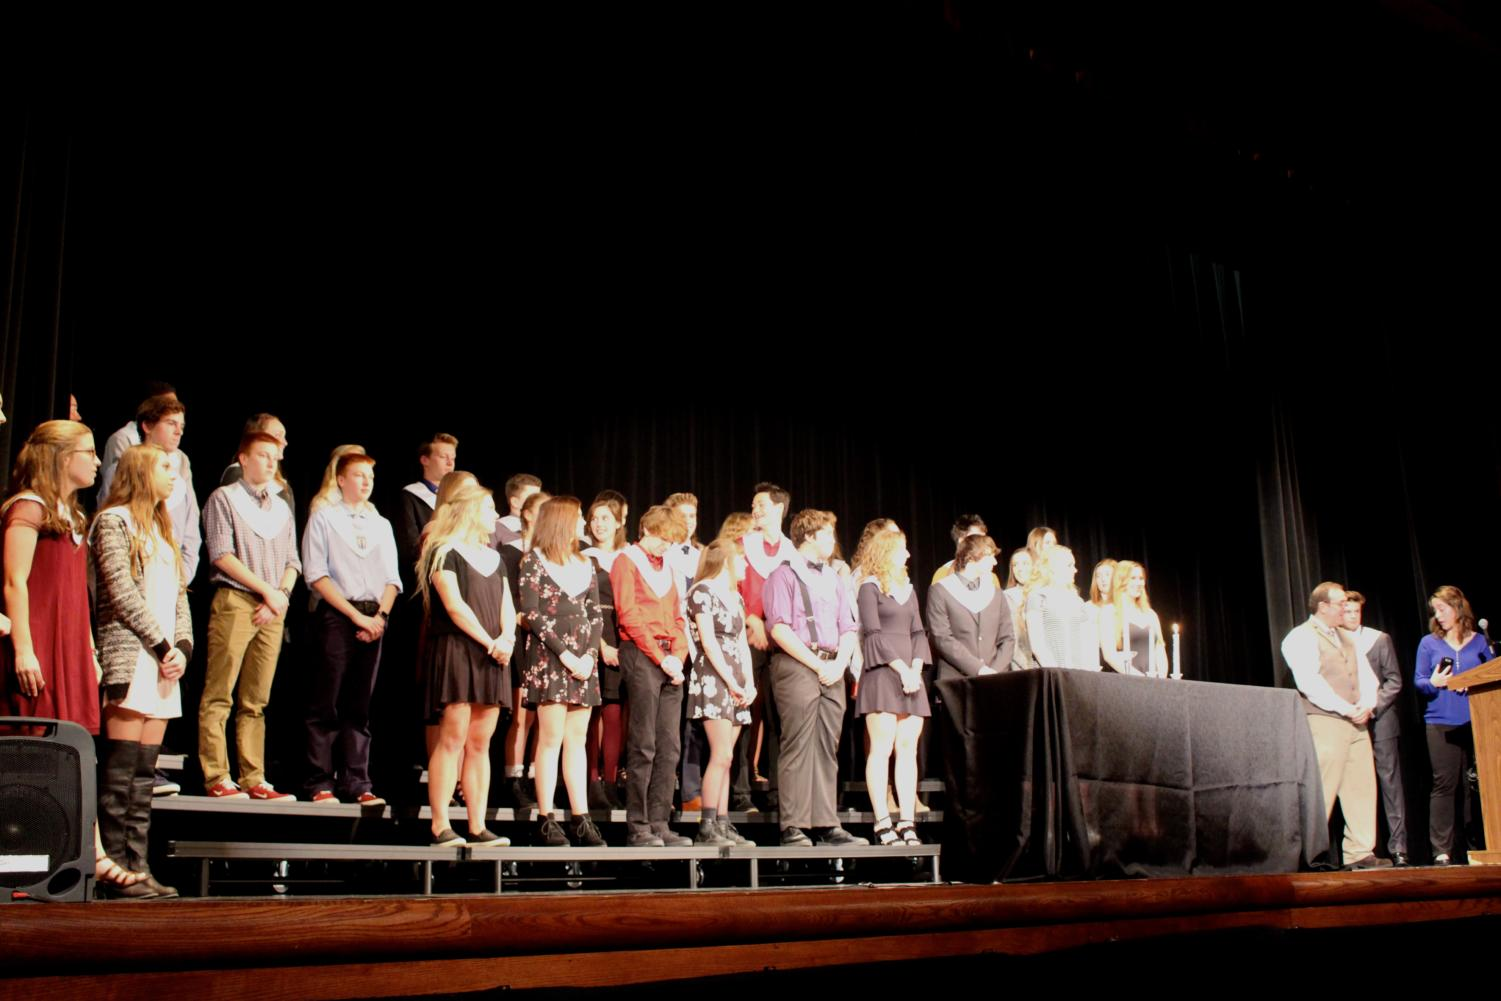 On Oct. 26, 35 new NHS members were recognized in front of family and administration.